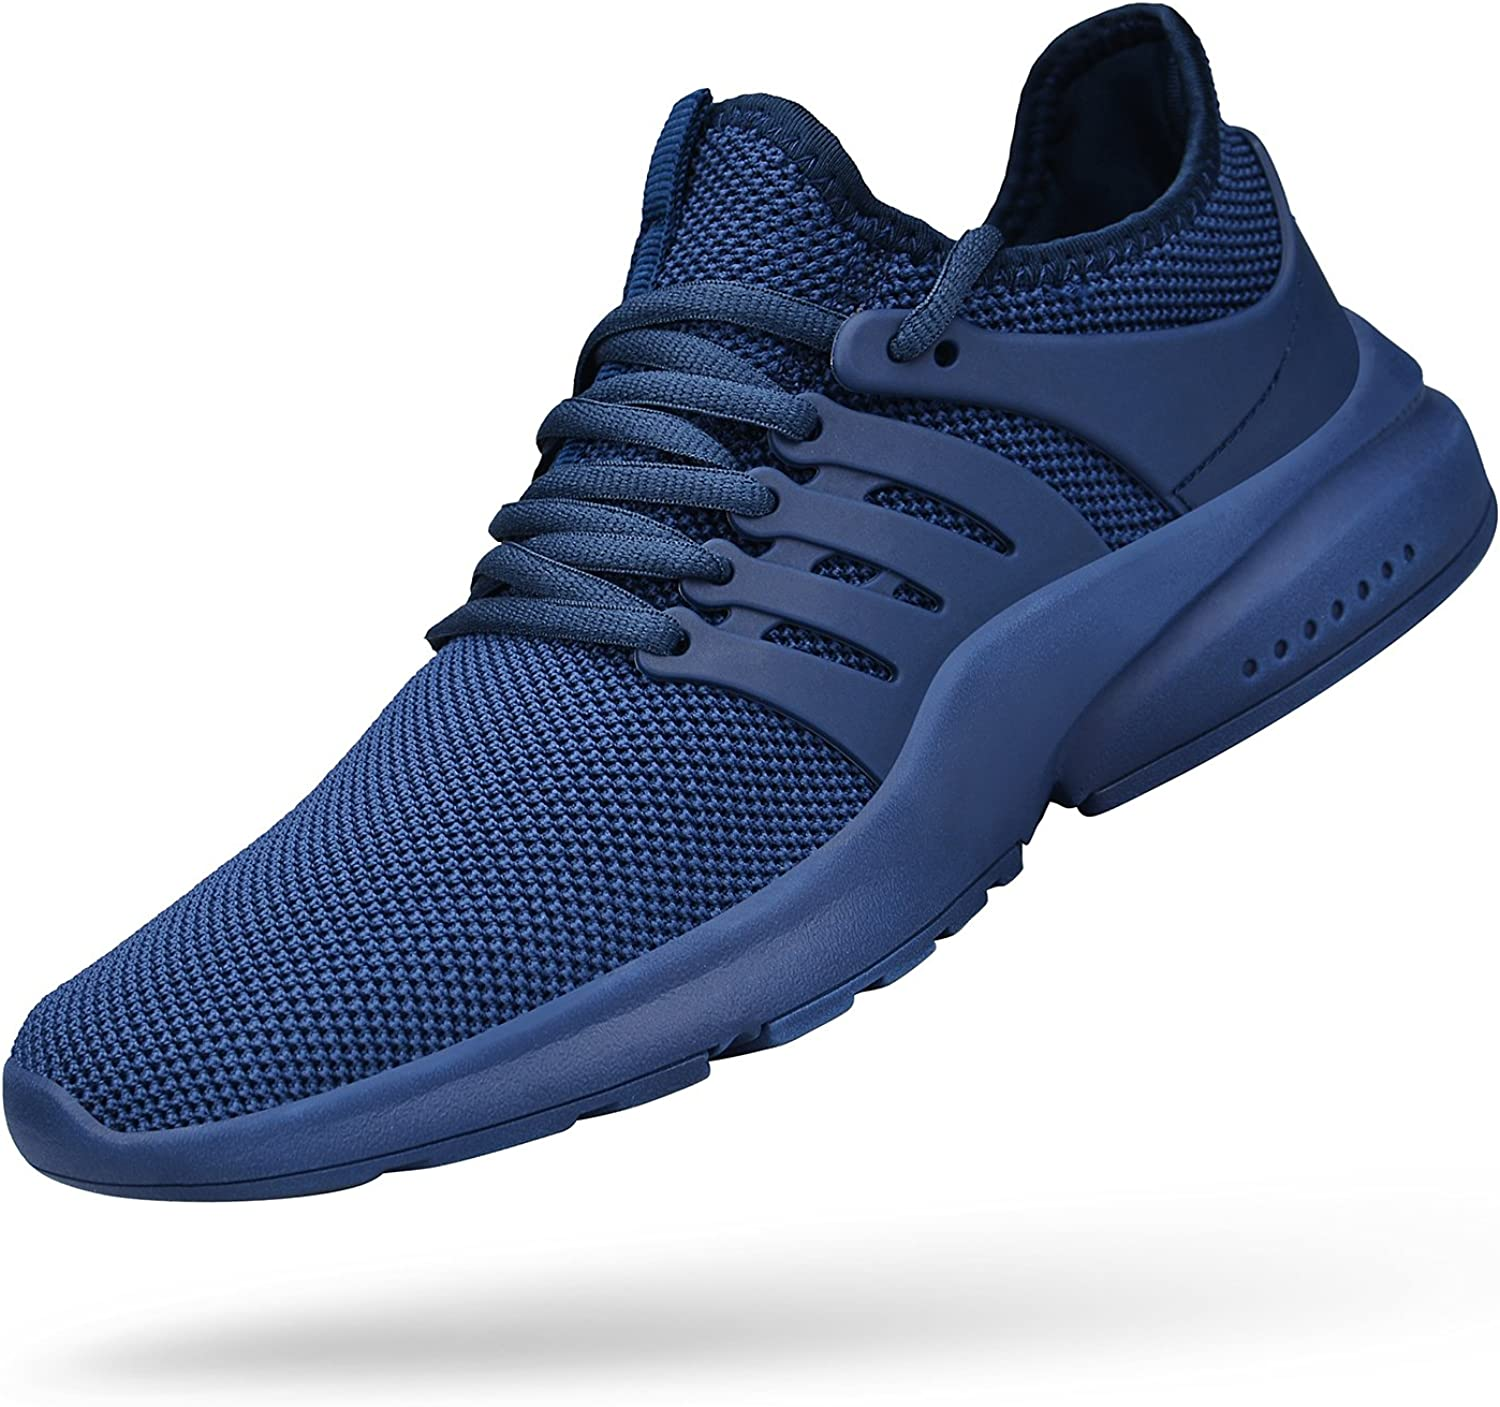 ZOCAVIA Mens Gym shoes Comfortable Athletic Weightlifting Lightweight Sneakers Basketball shoes bluee 12 D(M) US